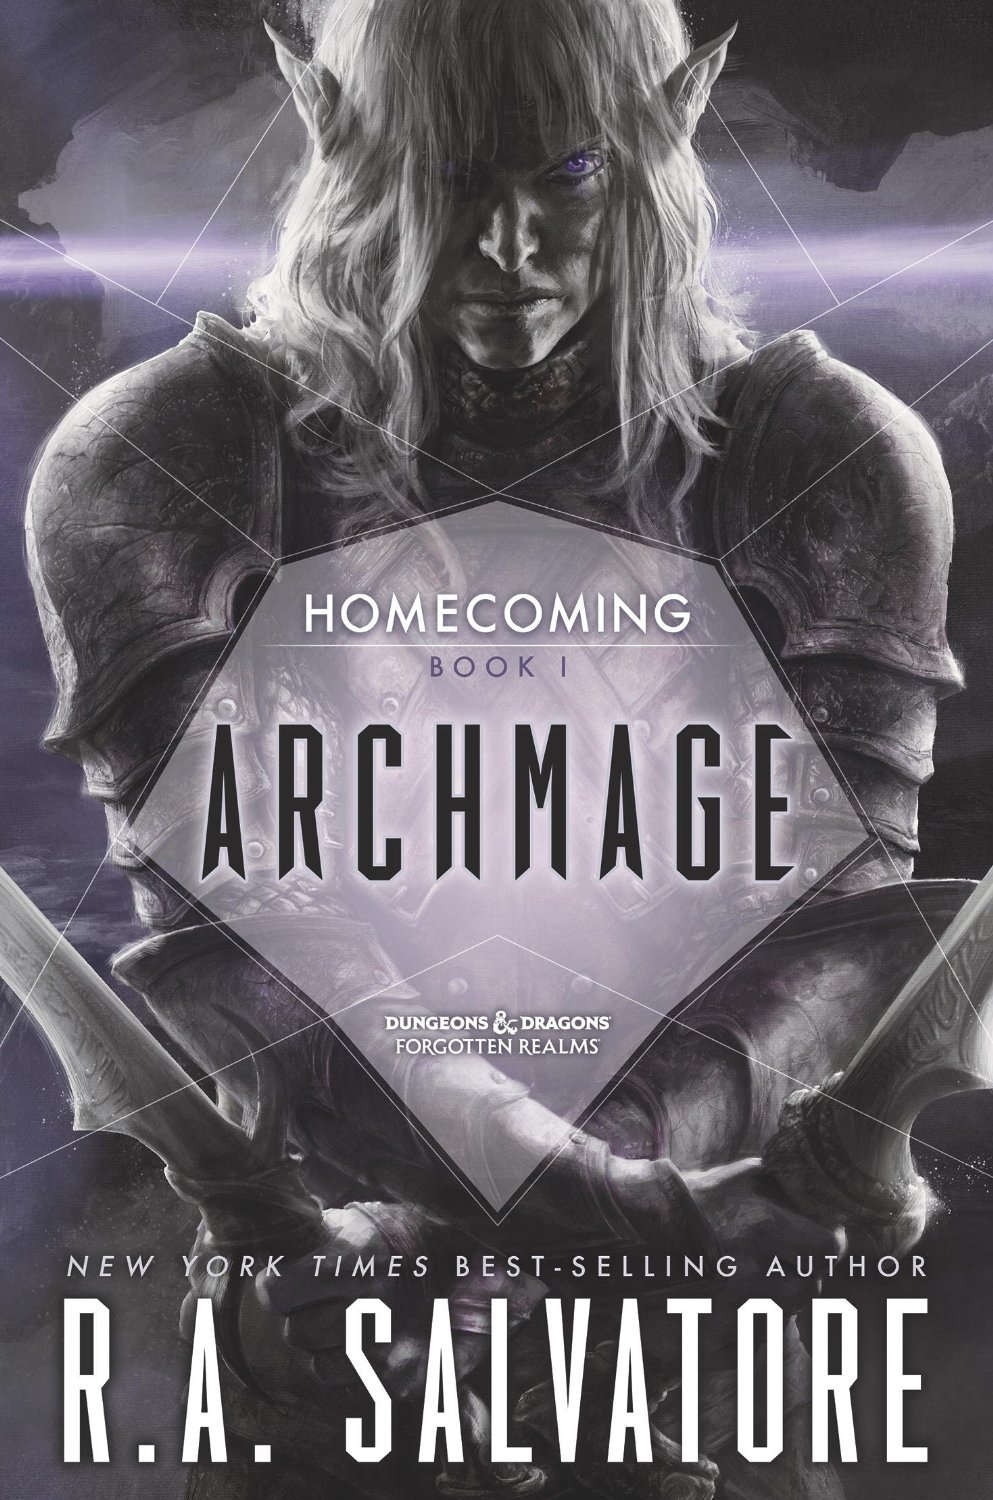 Archmage (Homecoming ,#1, The Legend of Drizzt, #28) R.A. Salvatore